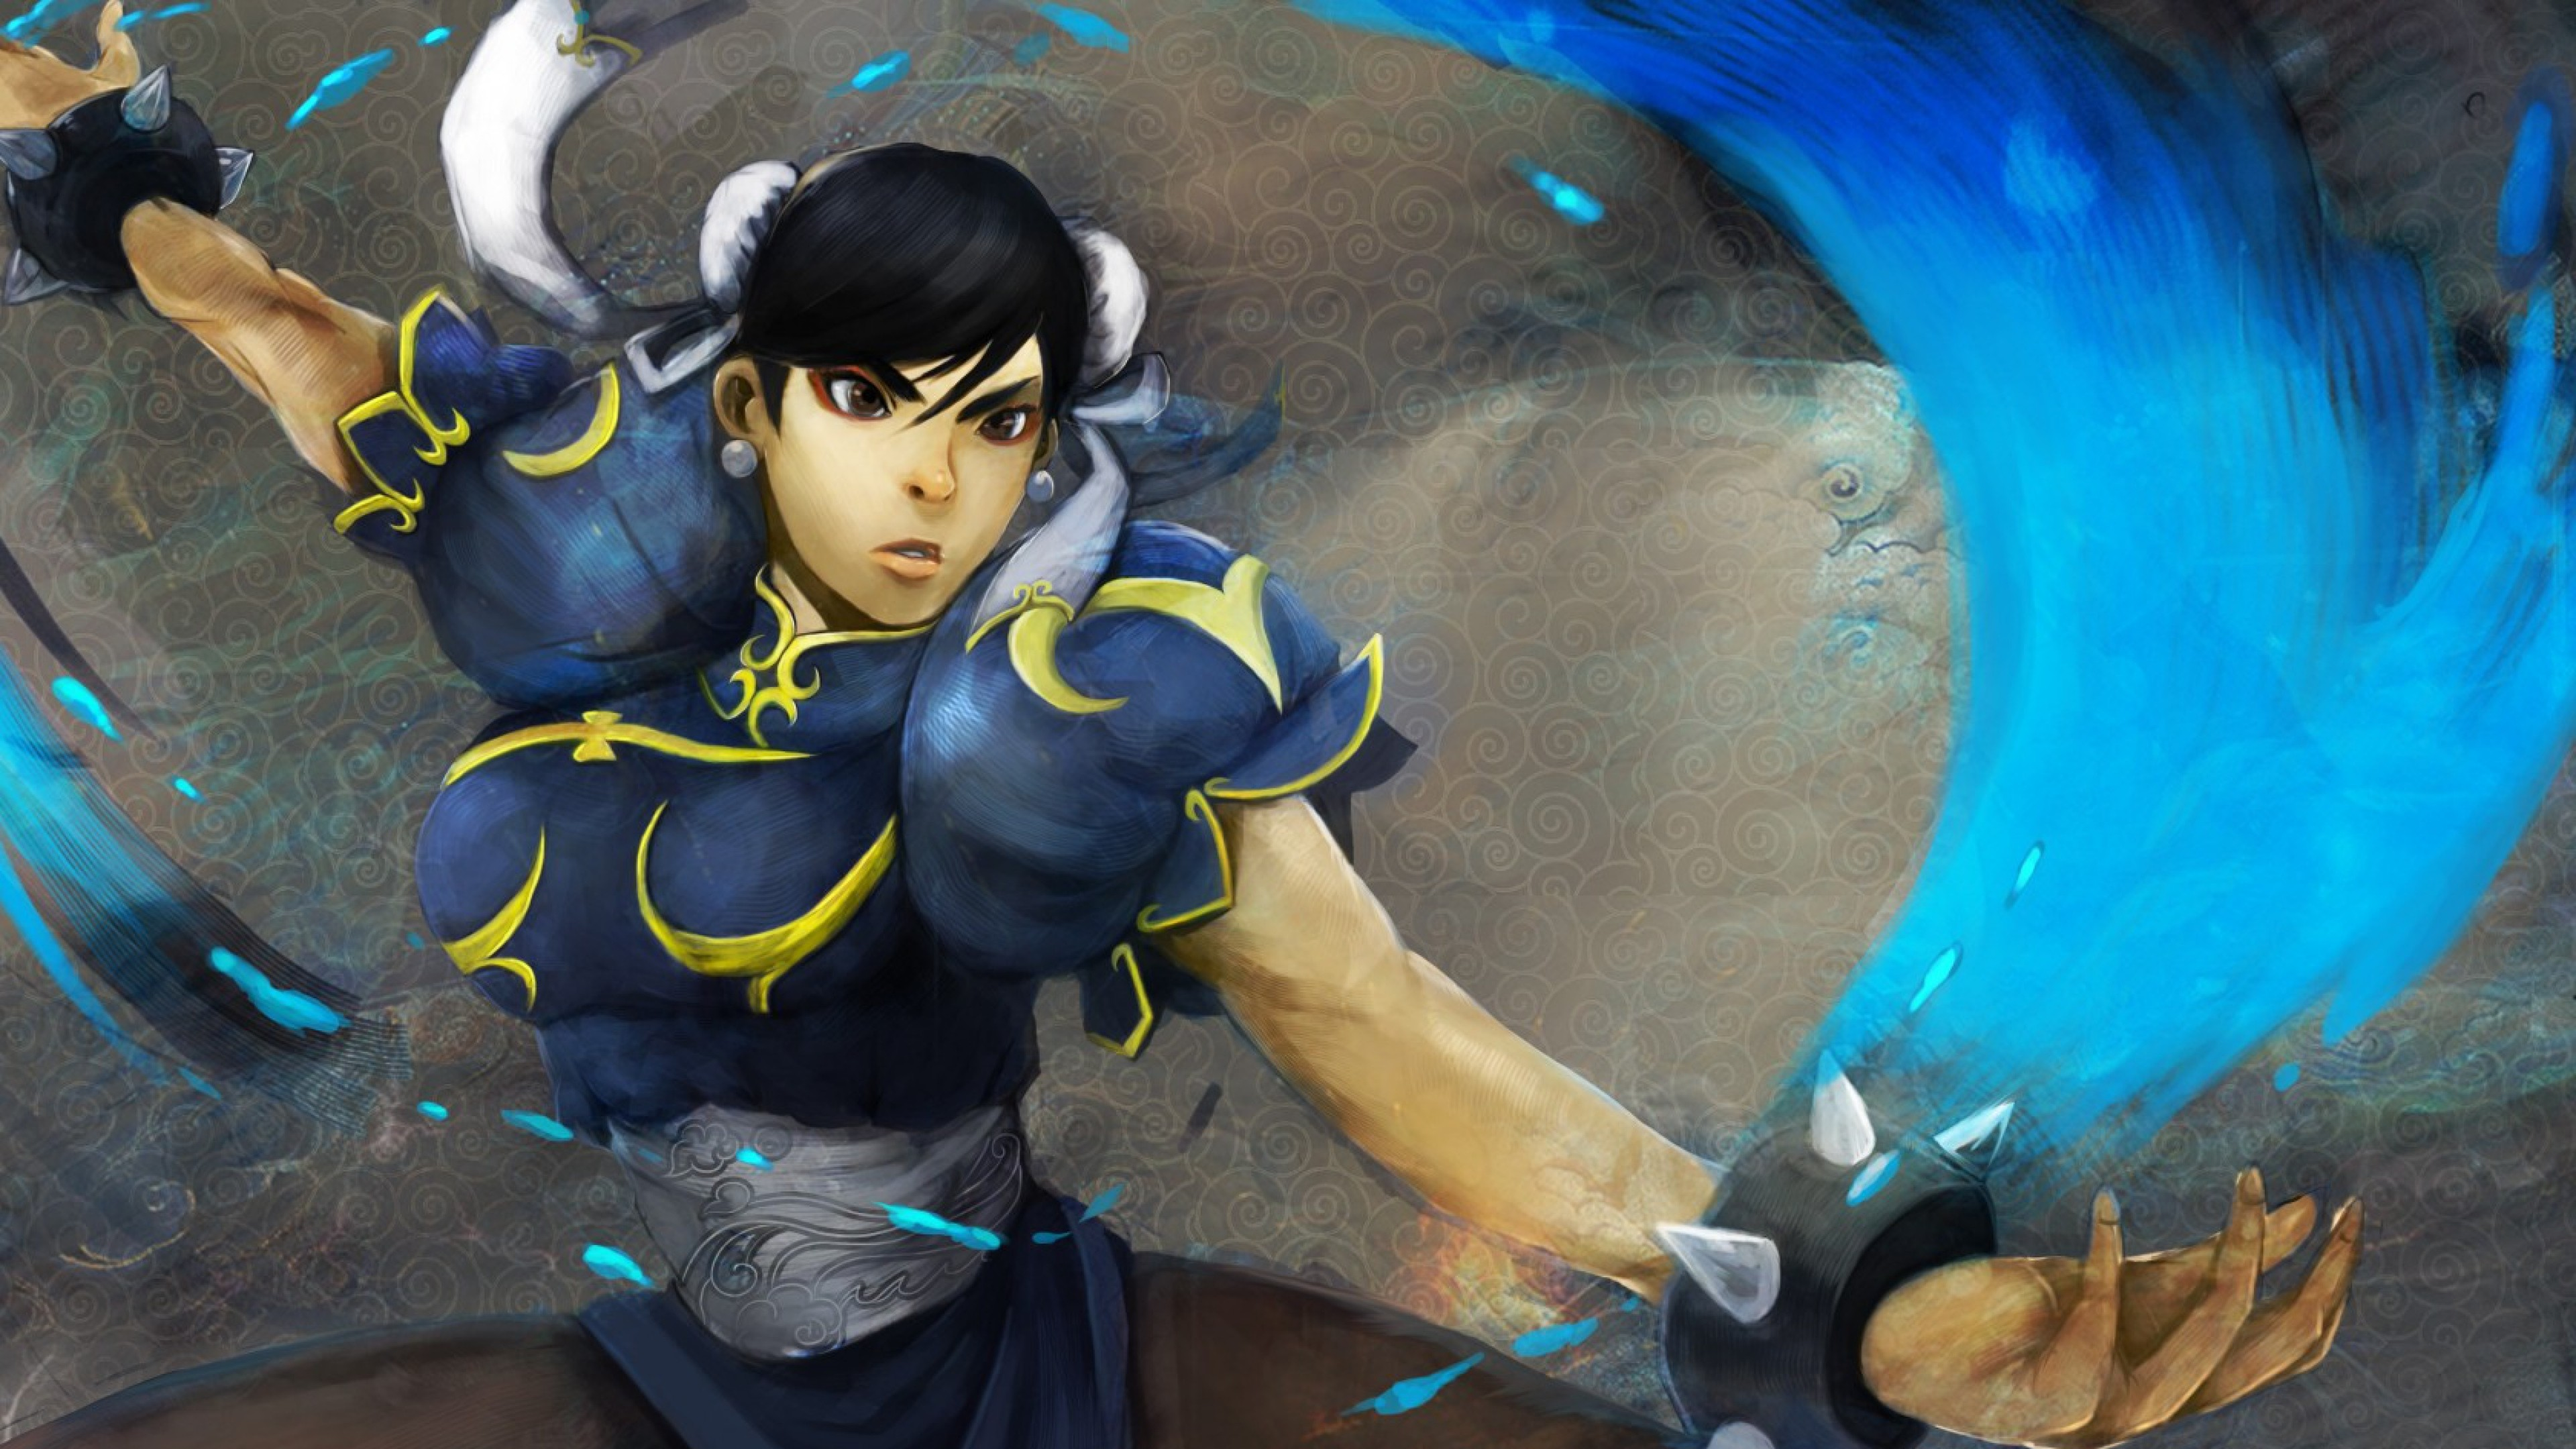 Wallpaper chun-li, street fighter, fighter, art